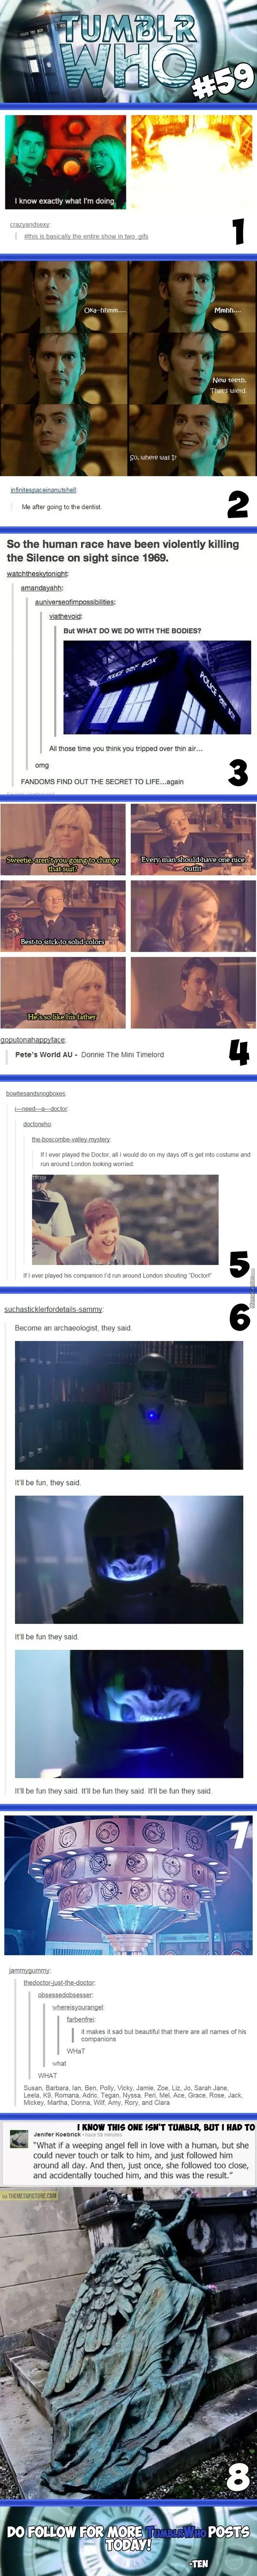 Oh but number 3